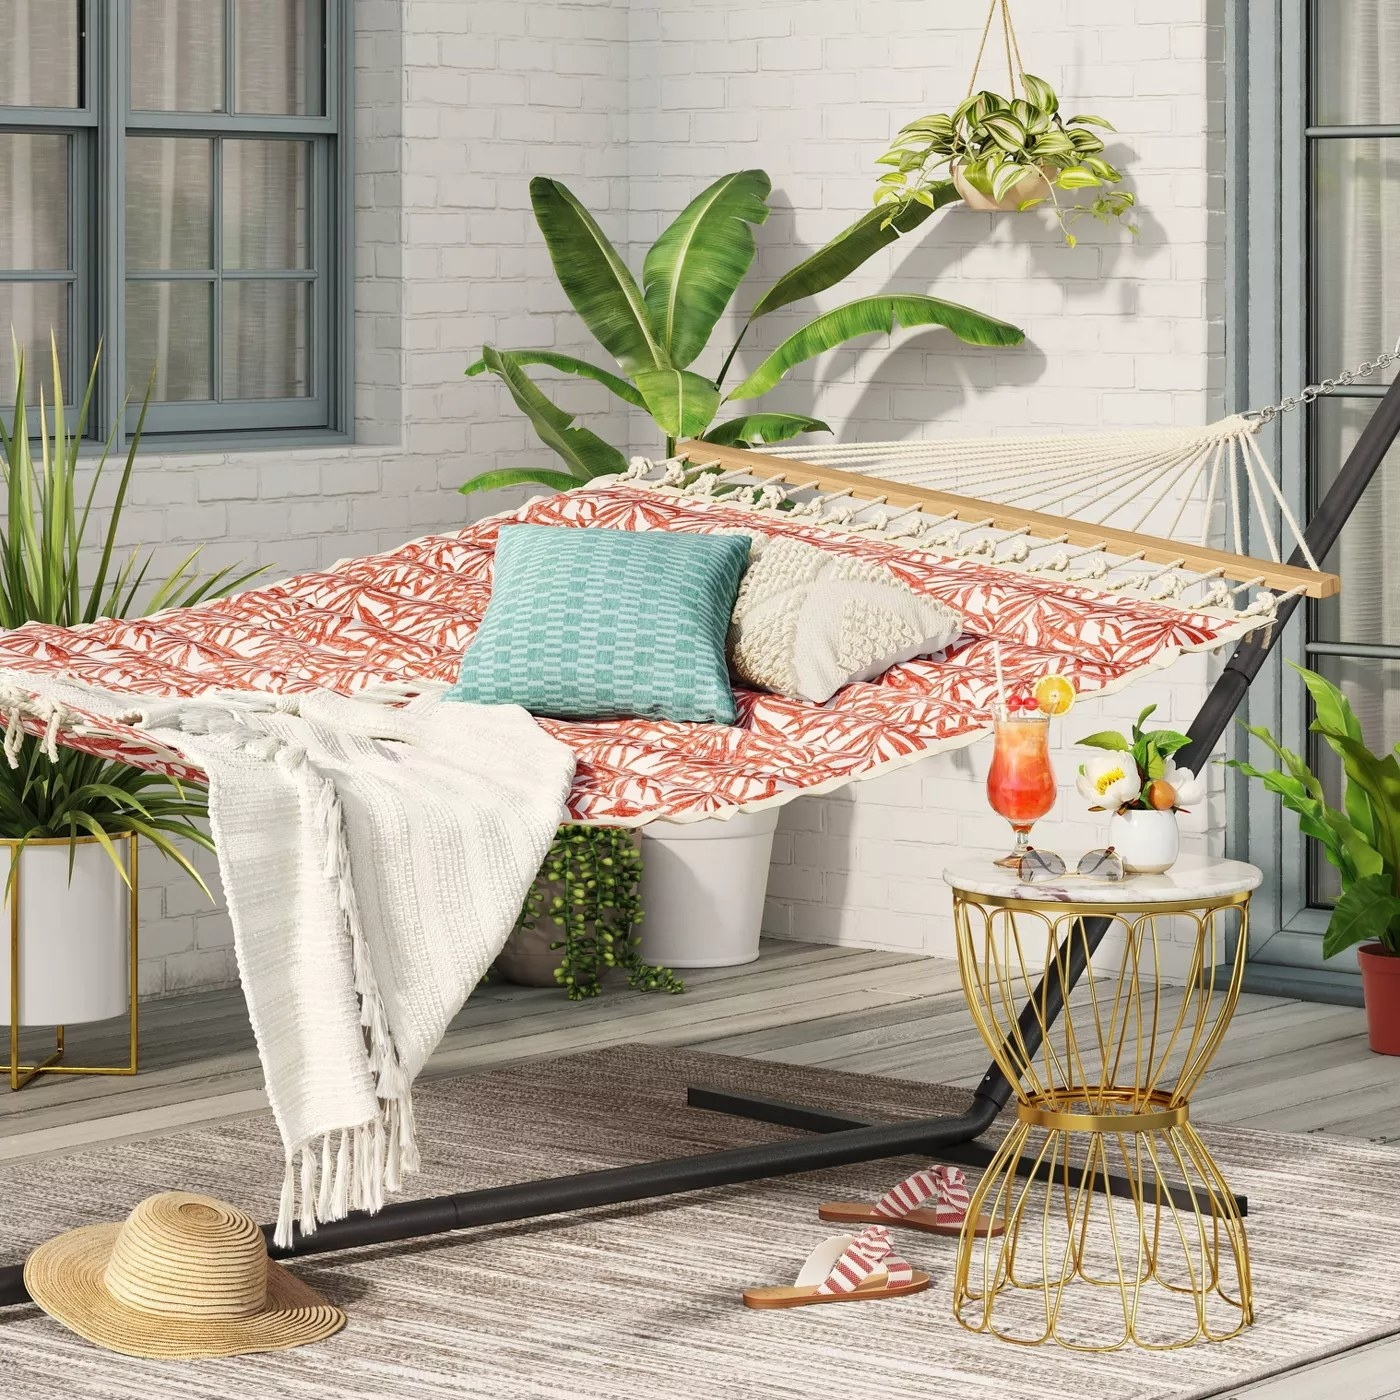 The padded hammock with a peach print on a deck